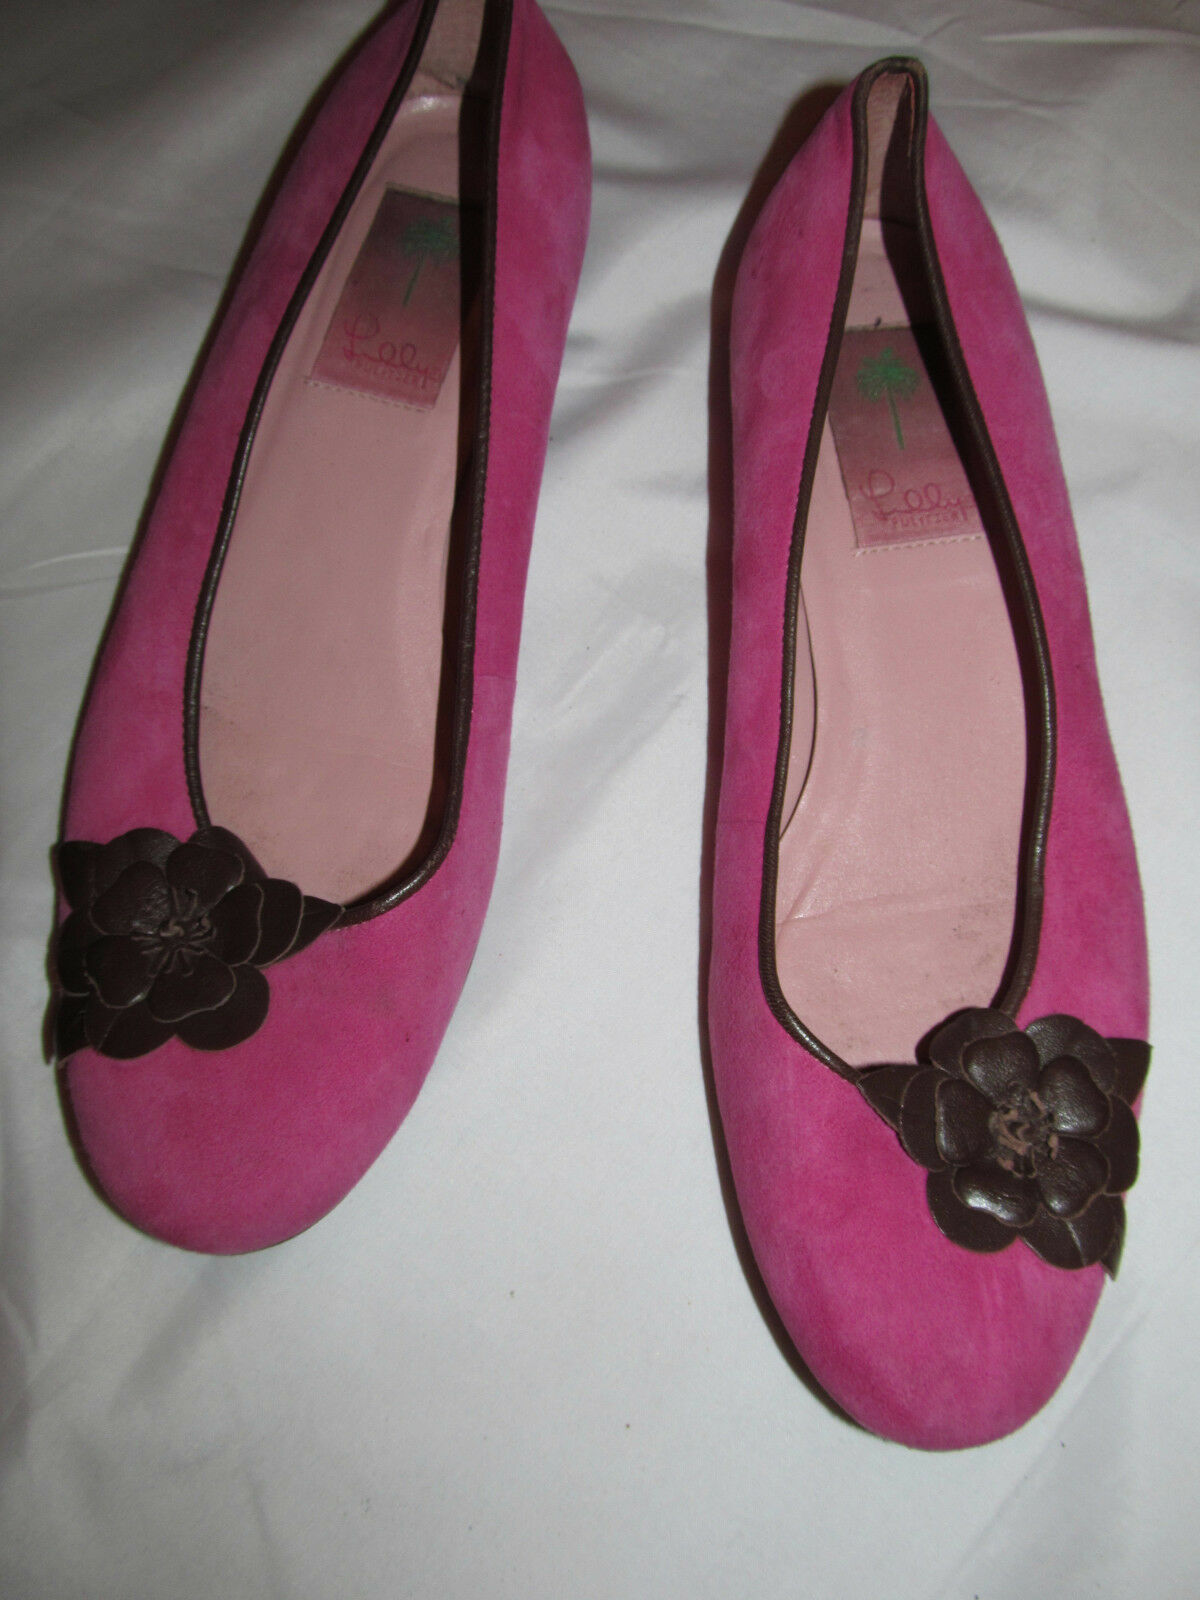 LILLY PULITZER raspberry pink suede flats with flower rosette applique shoes 8